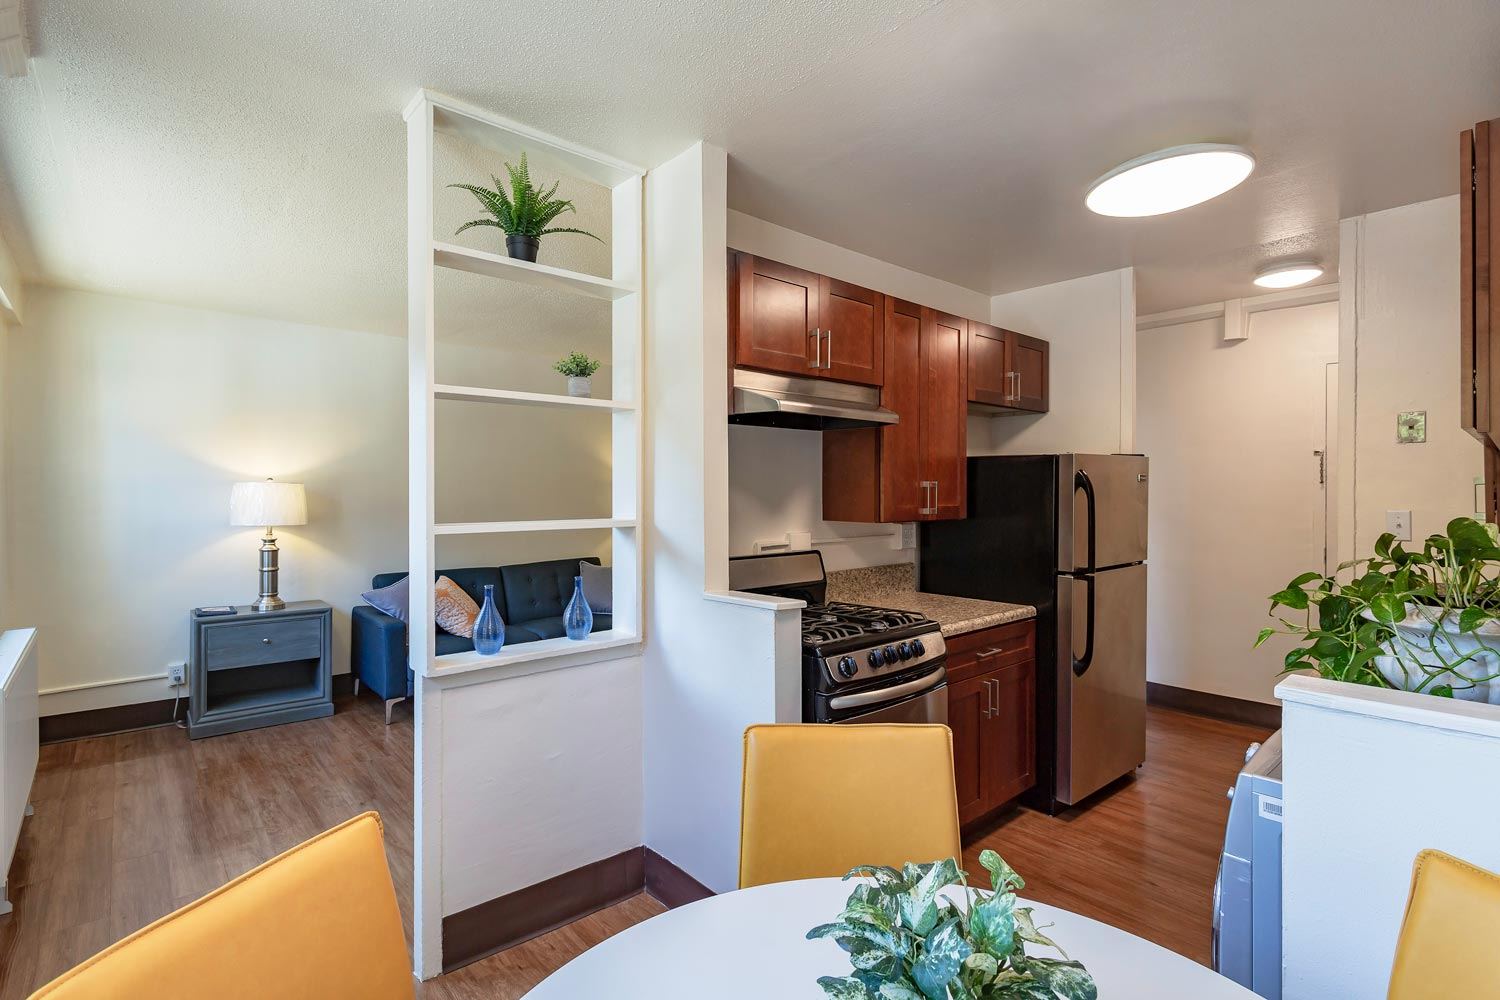 Ocean Bay-Bayside Apartments received new kitchens, bathrooms, doors and interior finishes